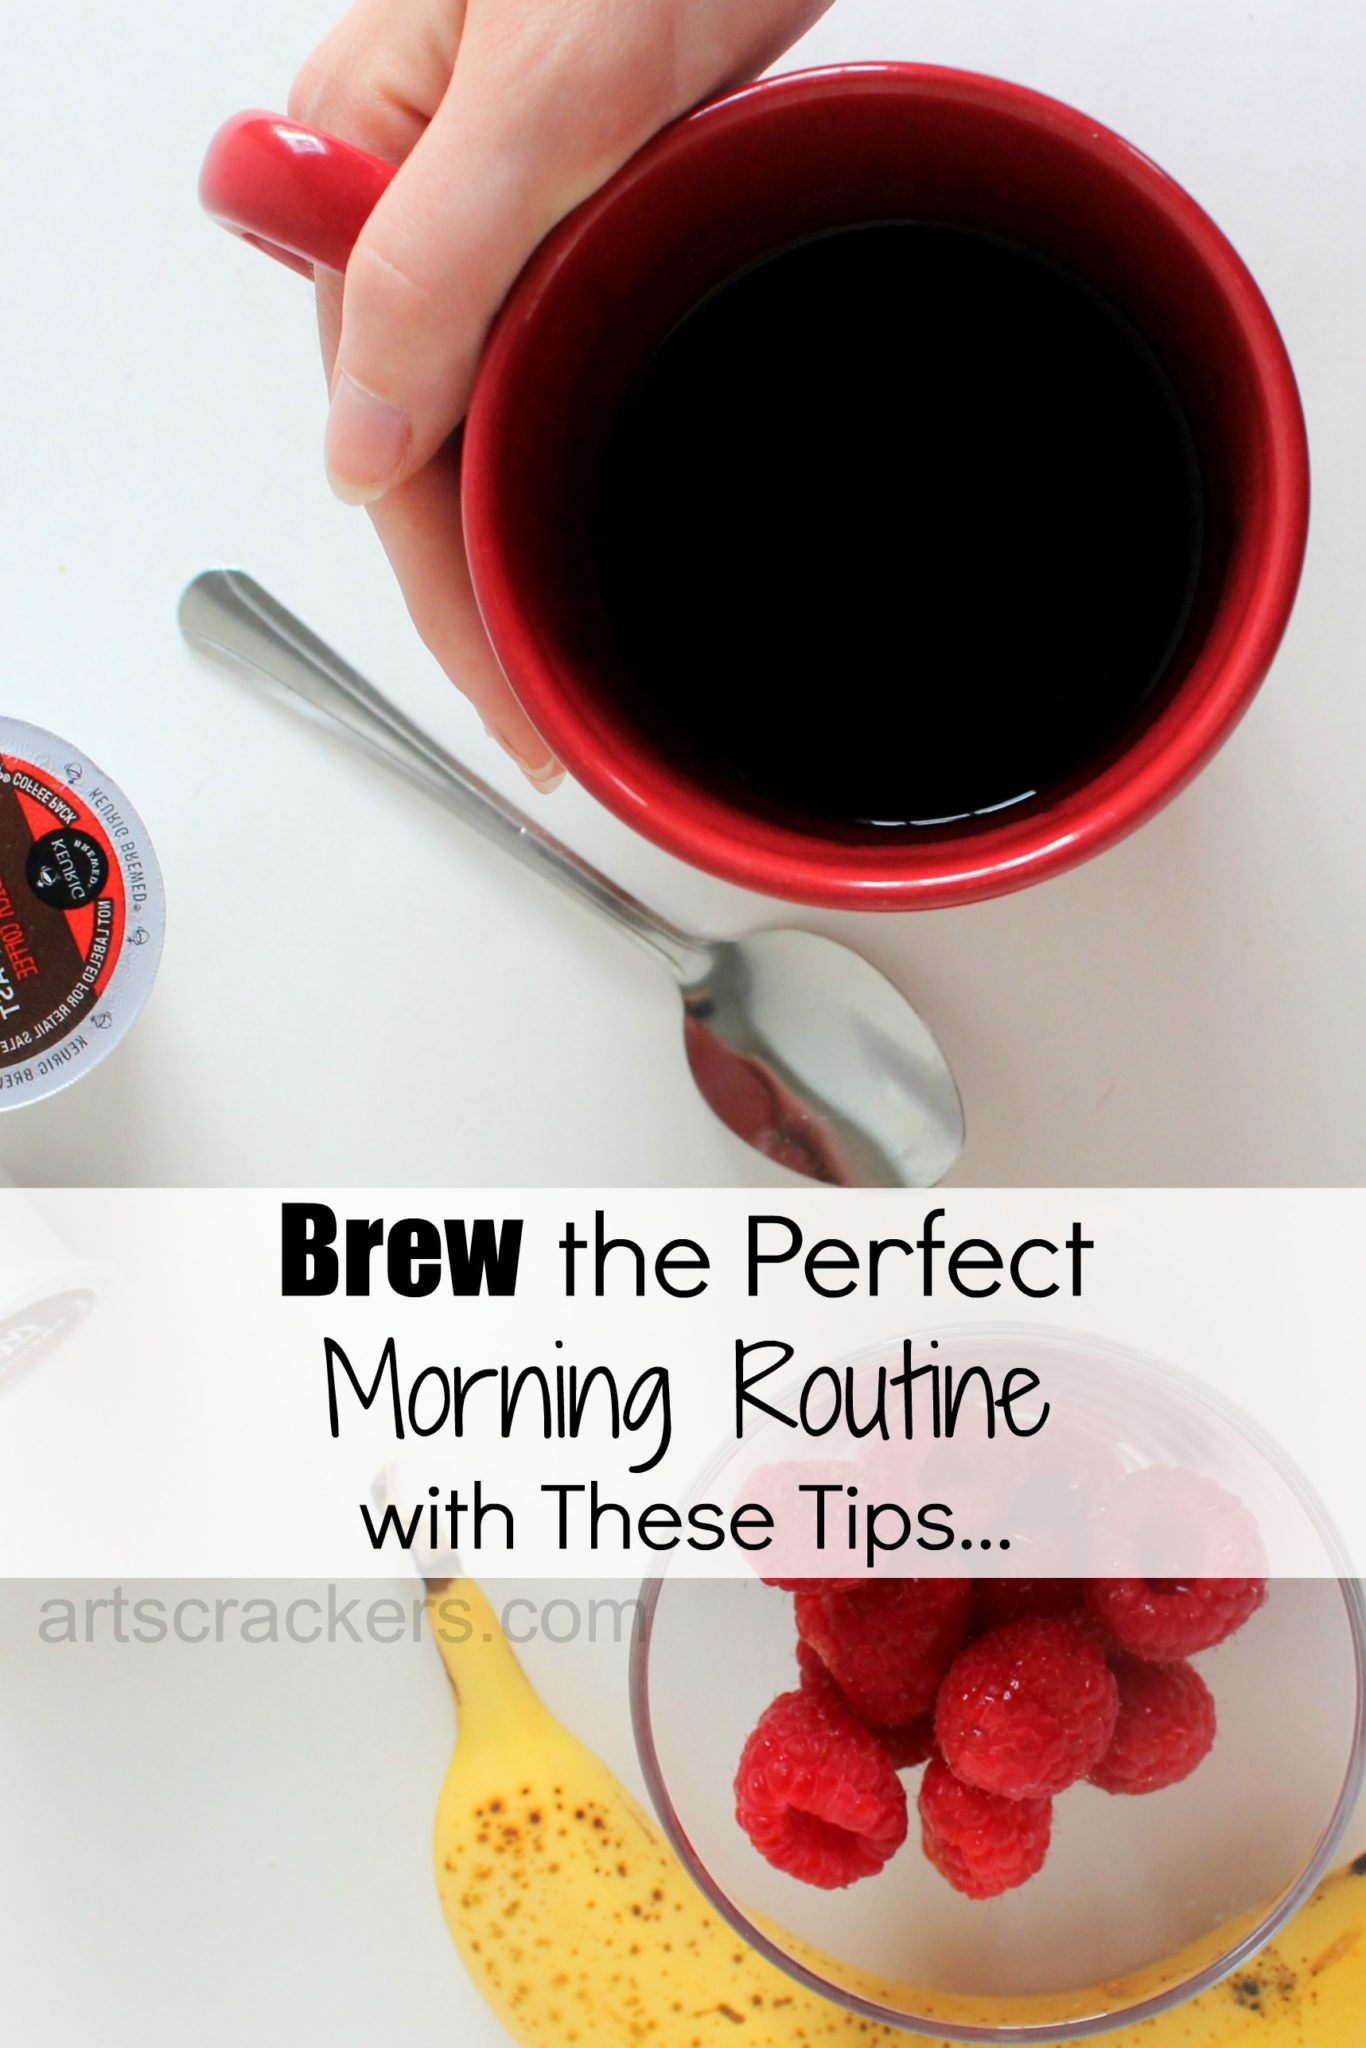 McCafe Coffee Brew the Perfect Morning Routine with These Tips...